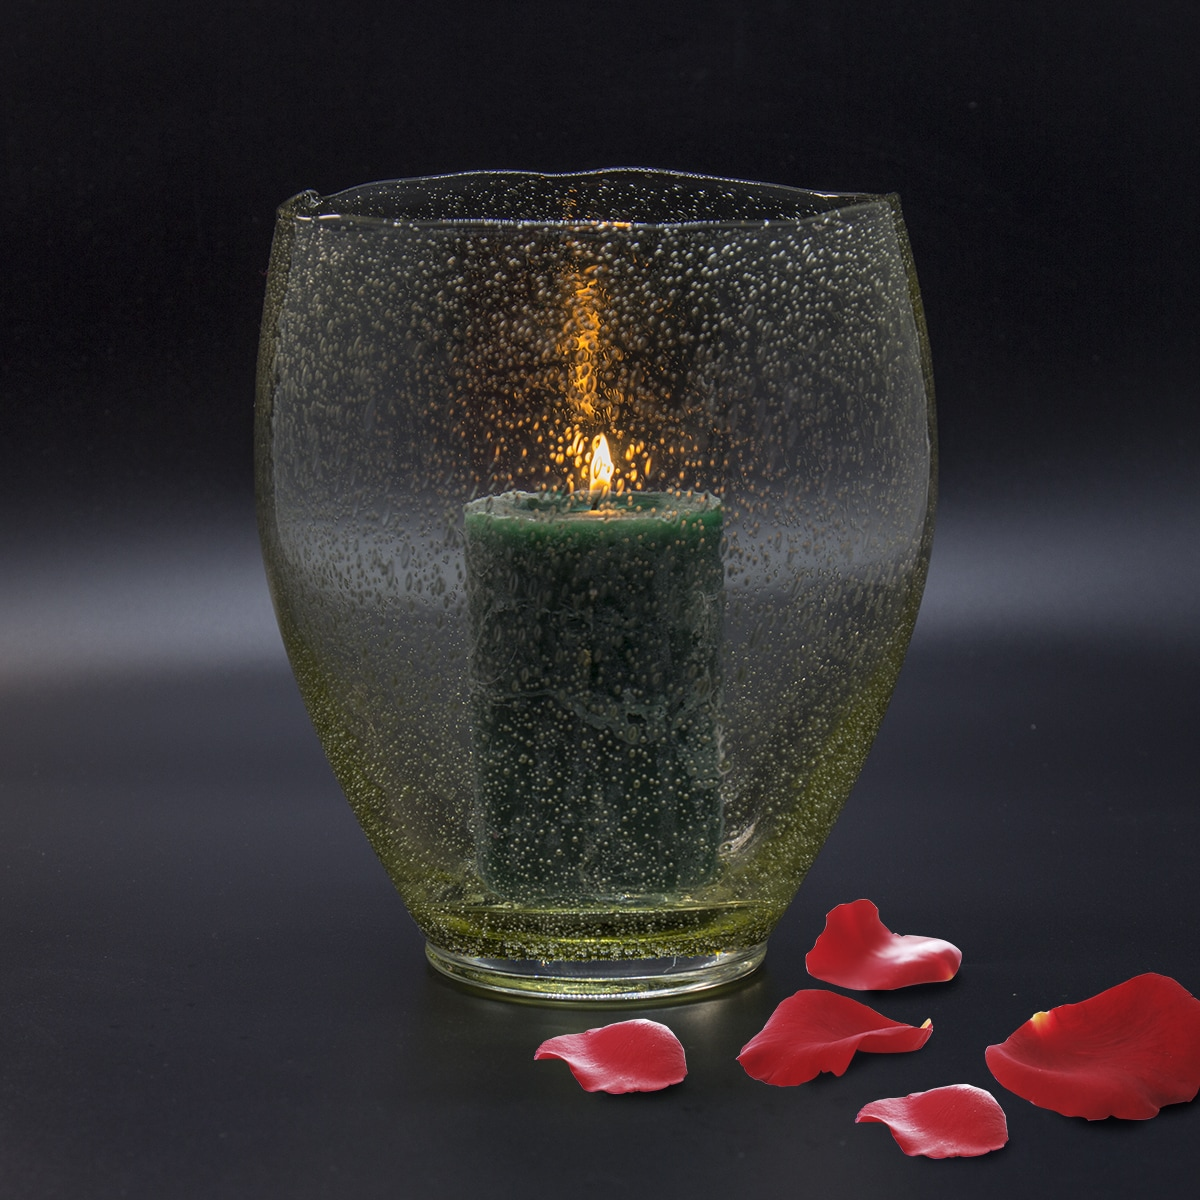 Candle made with Lavendel